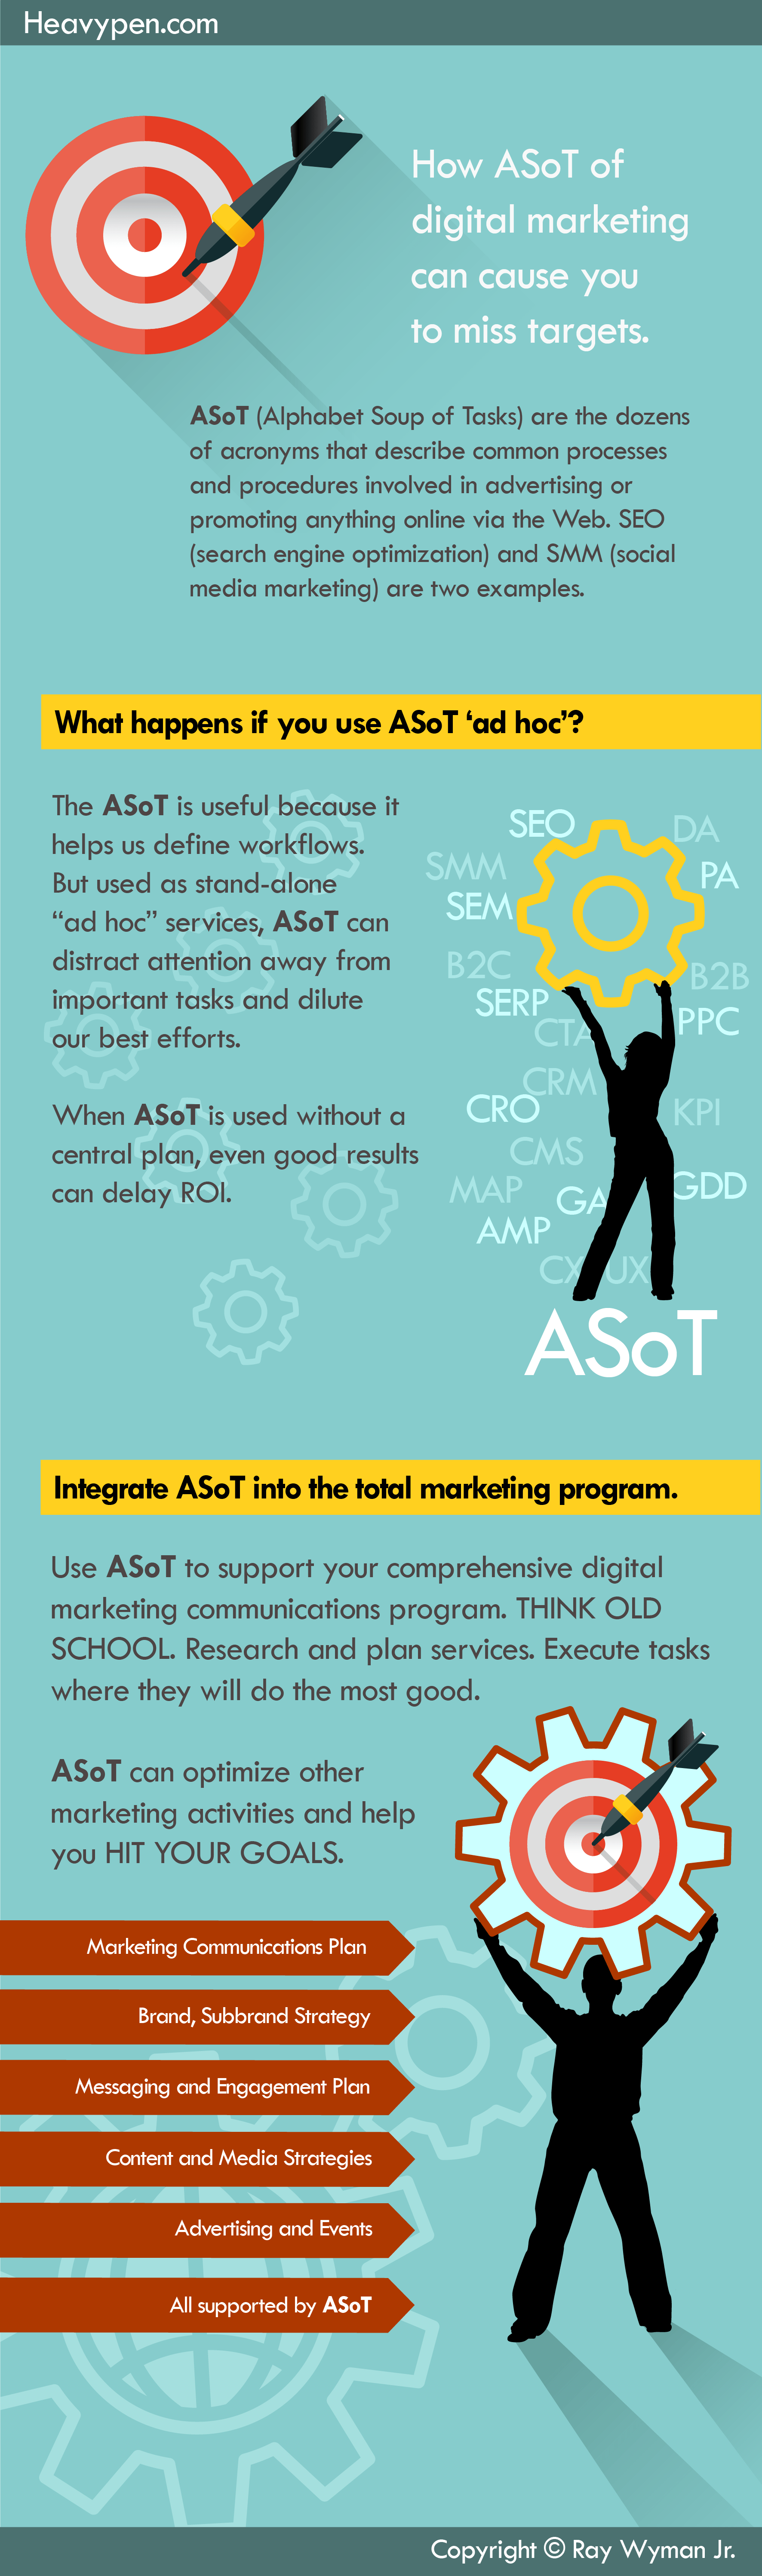 ASoT of digital marketing